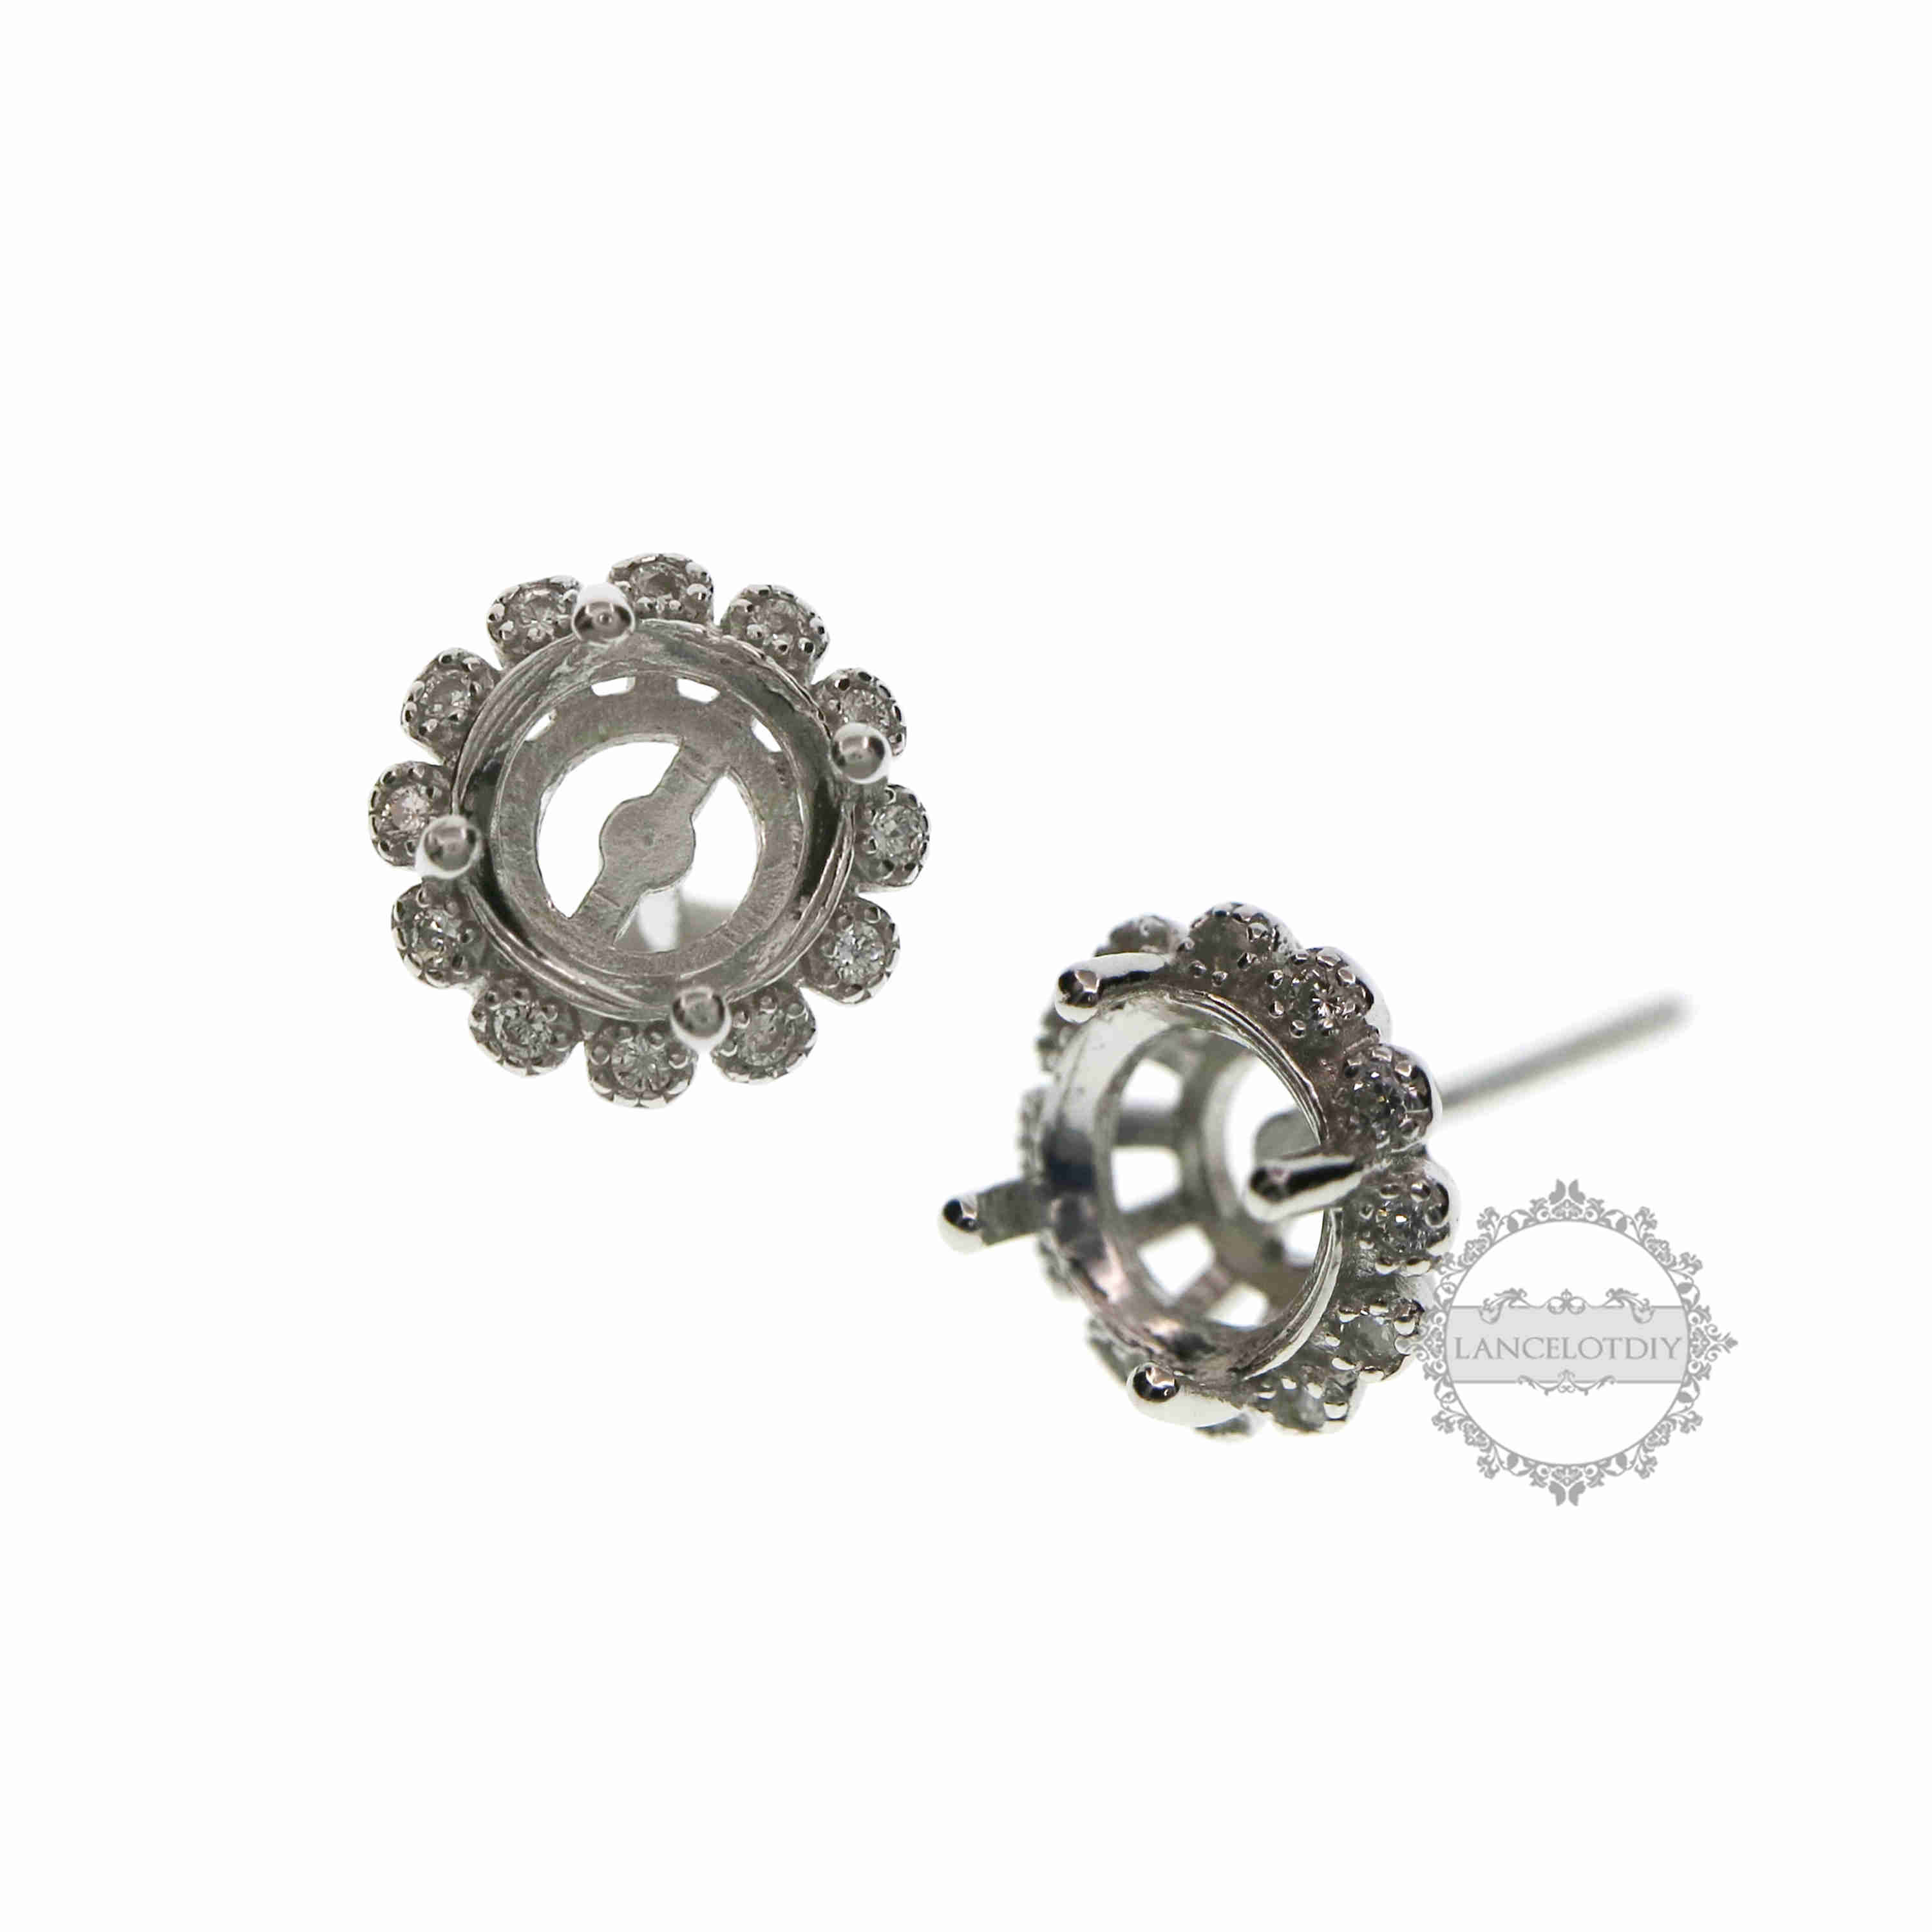 6MM Round Prong Bezel Setting Solid 925 Sterling Silver Studs Earrings DIY Supplies 1702176